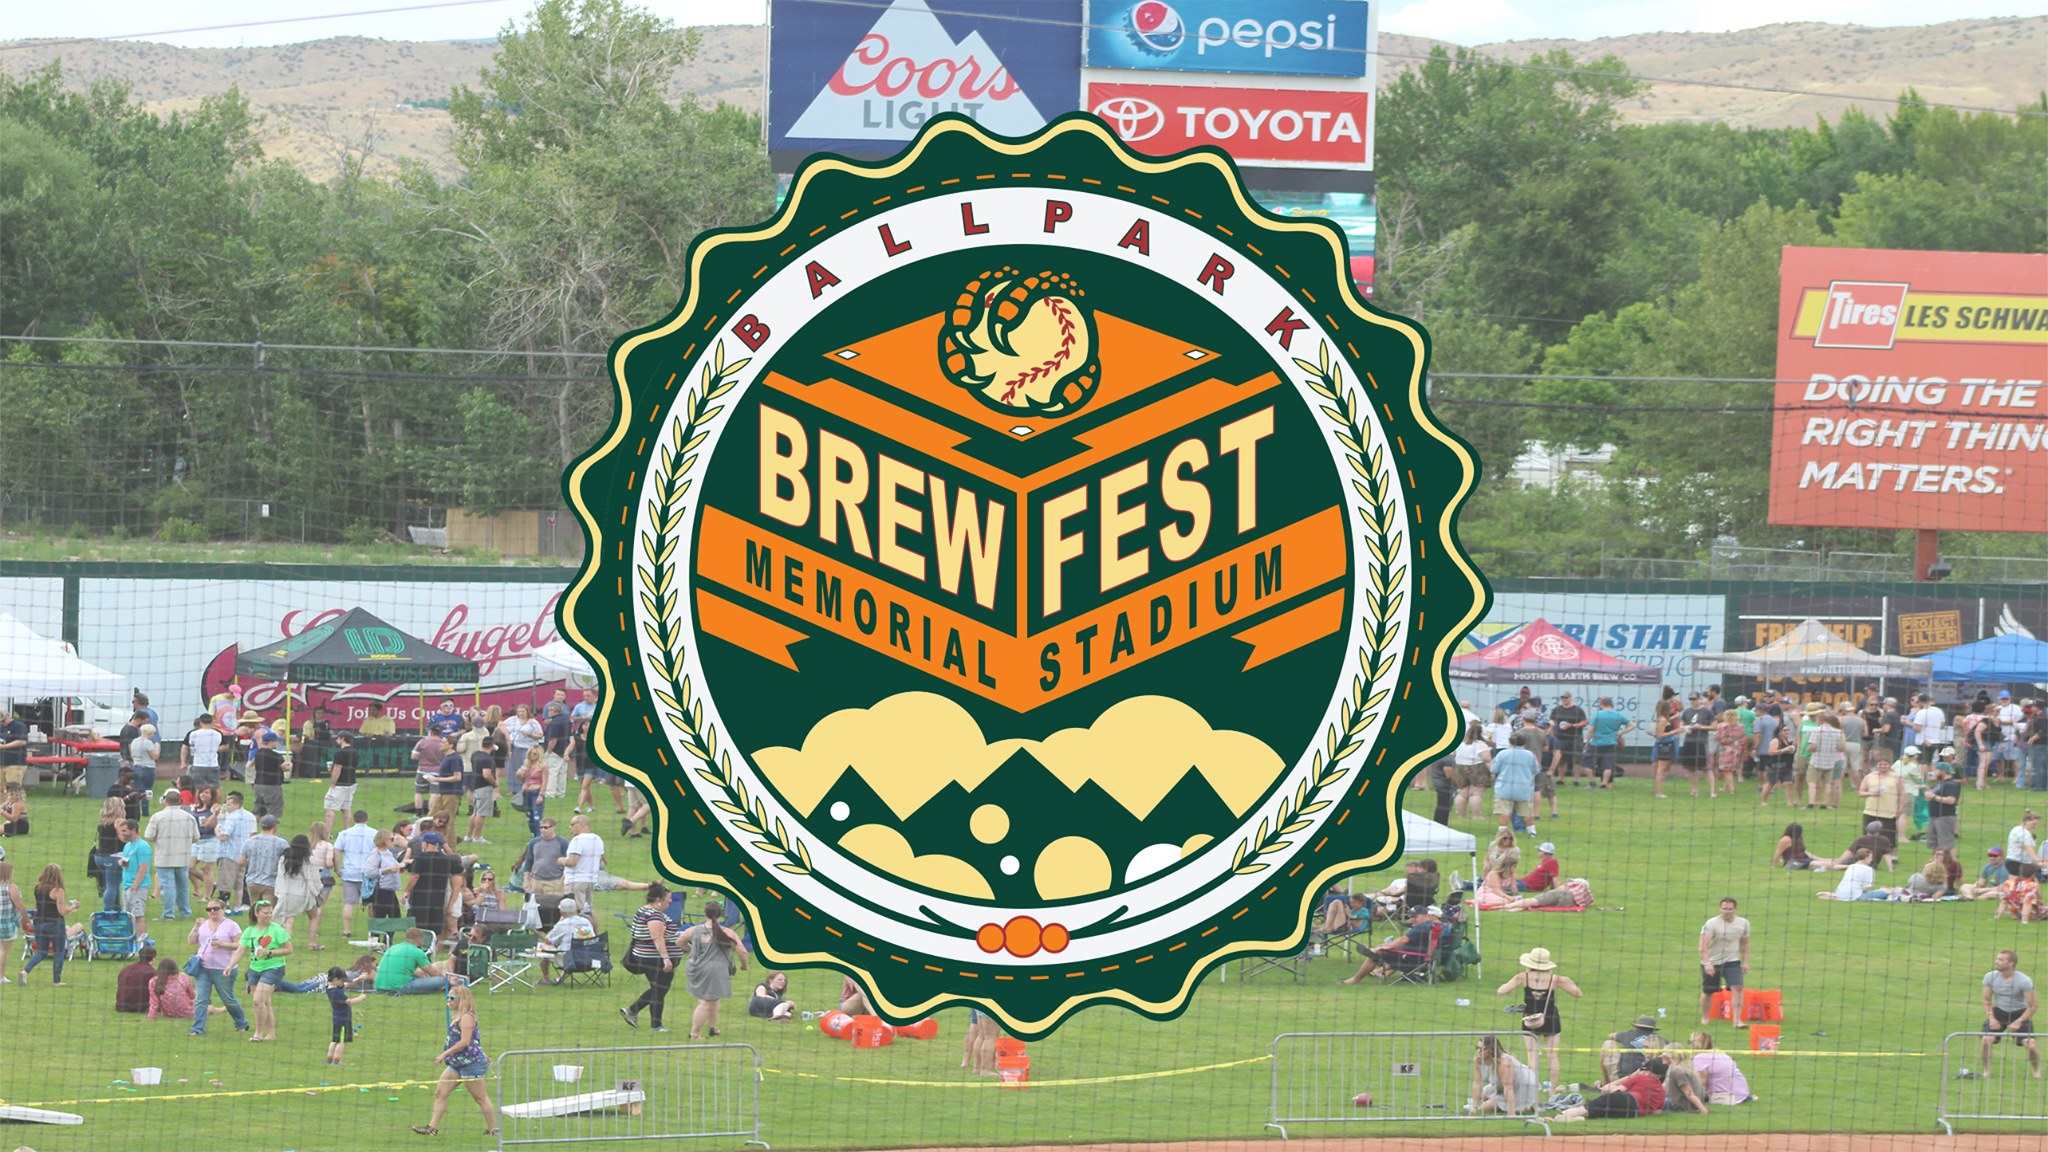 image sourced from Ballpark Brew Fest